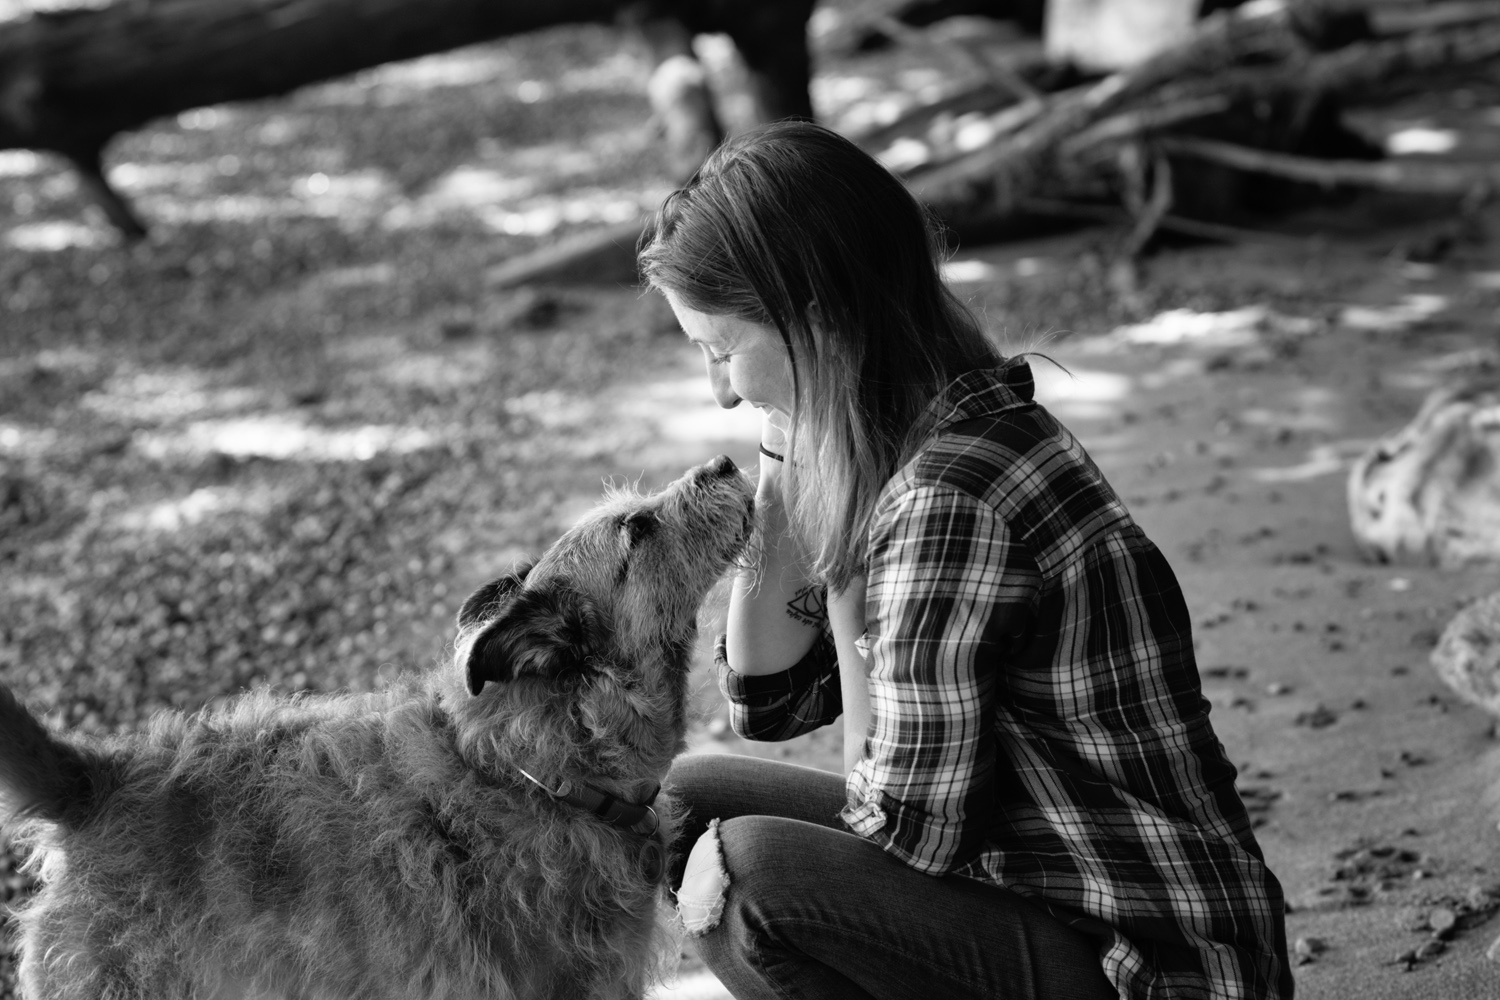 Black and white photograph of woman and her dog looking at each other on the beach